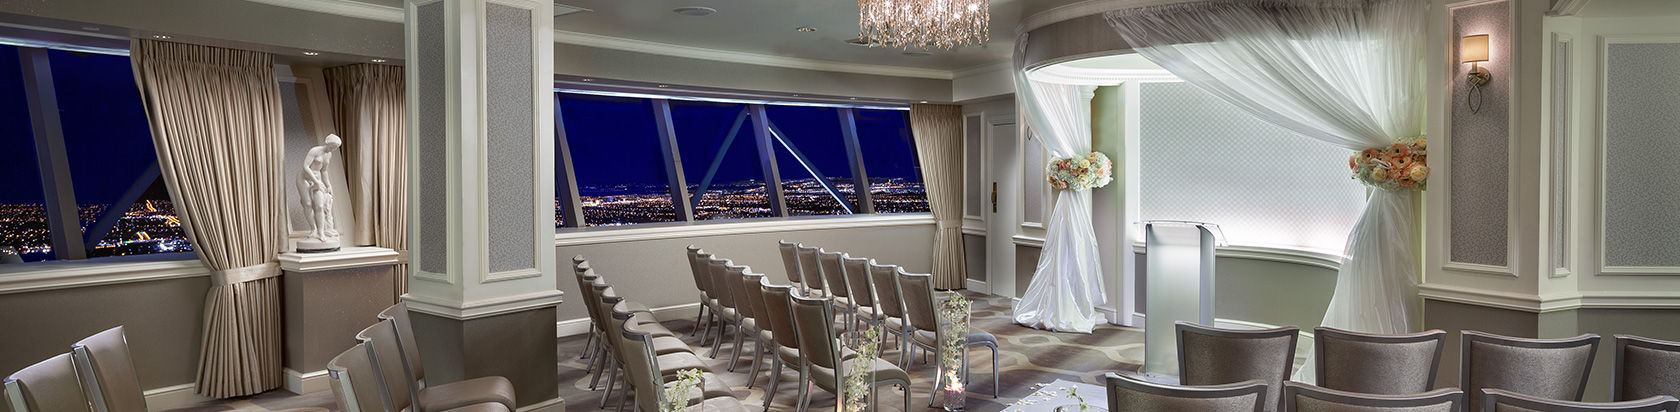 Chapel in the Clouds at the Stratosphere Hotel - 7